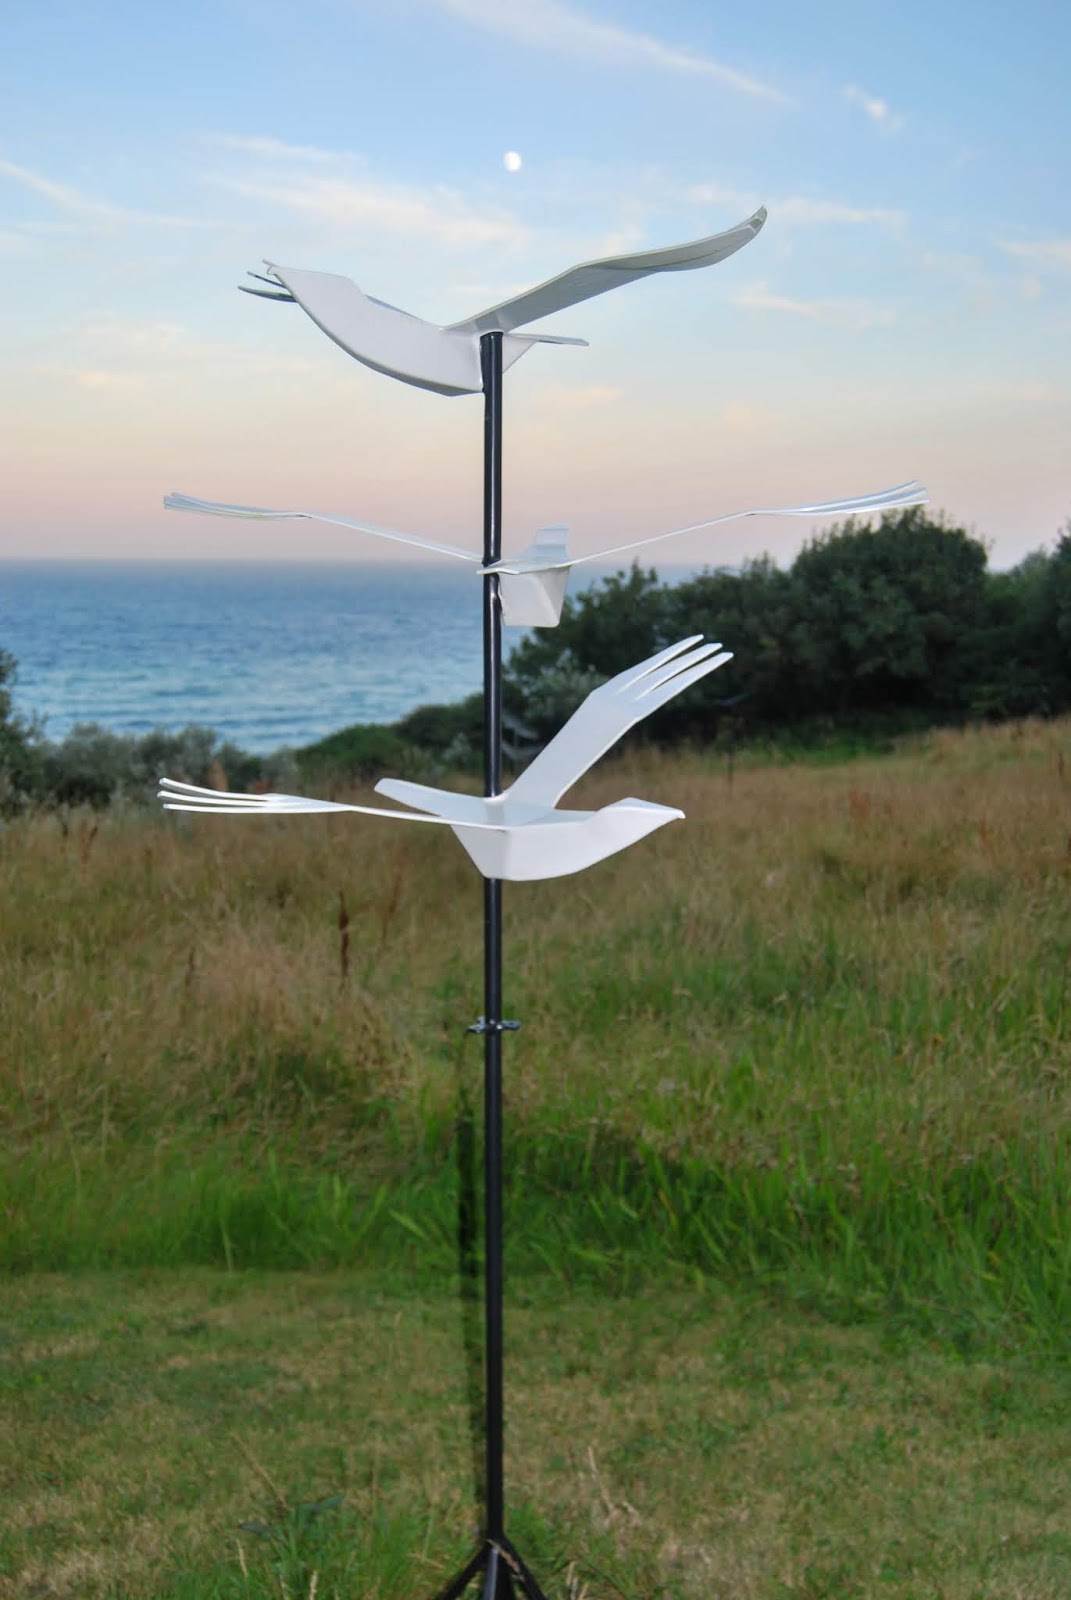 Cornish Tales - Unmissable Sculpture Park in Cornwall, sculptures by Terence Coventry, photo by Sarah Agnew